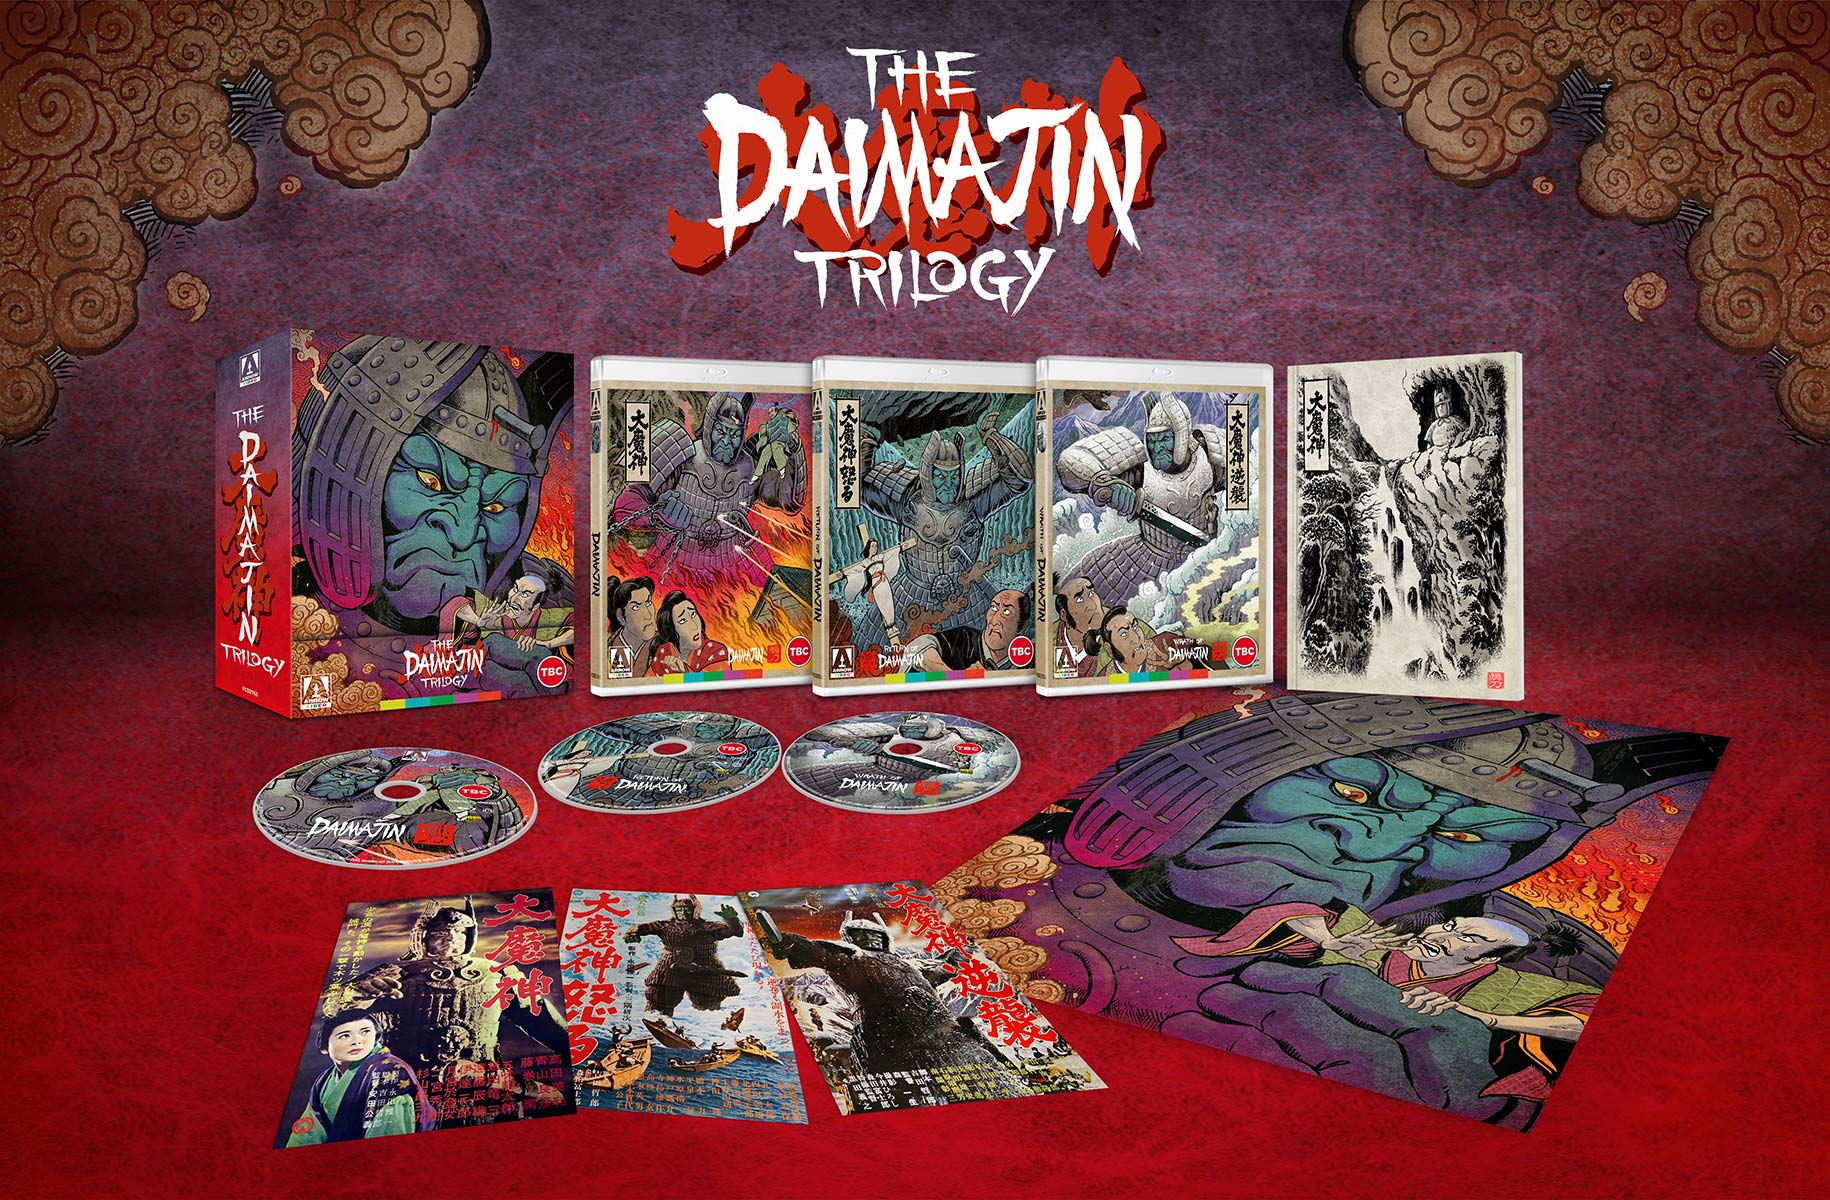 A promotional image for The Daimajin Trilogy Blu-Ray release from Arrow Films, highlighting the artwork of the box set, the cases, the discs, and the pack-in materials.